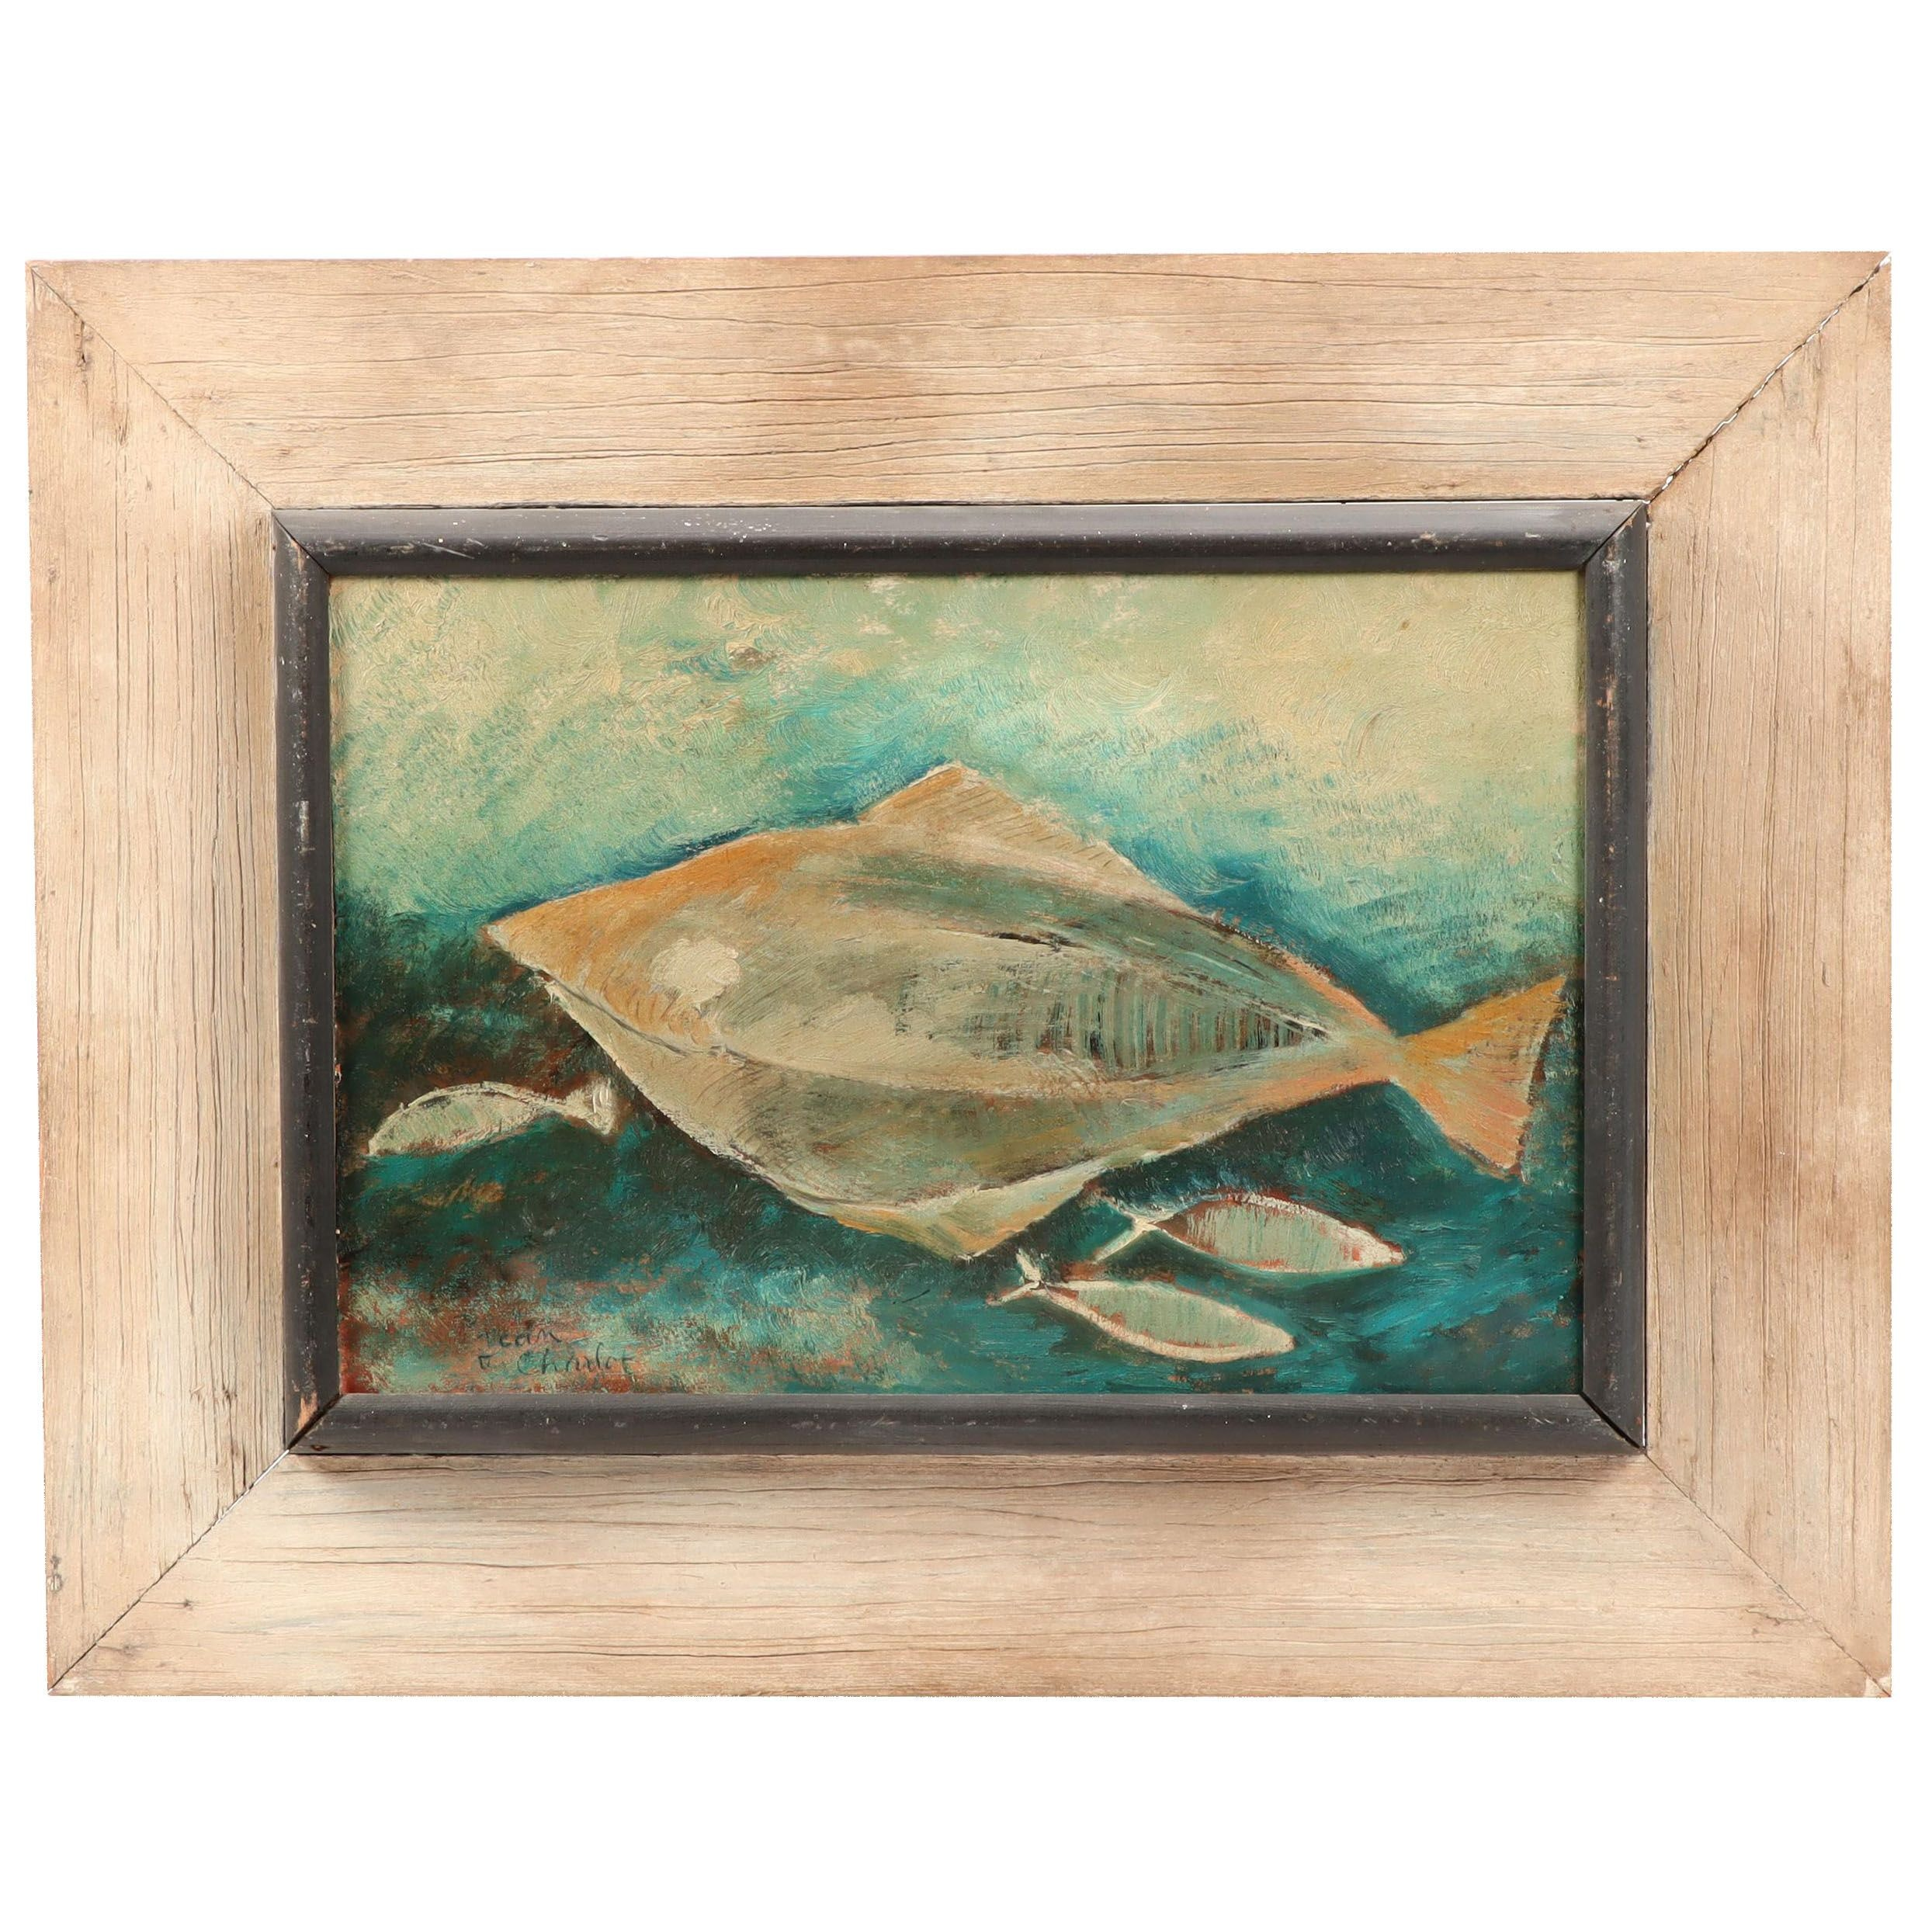 Jean Charlot Oil Painting of Fish